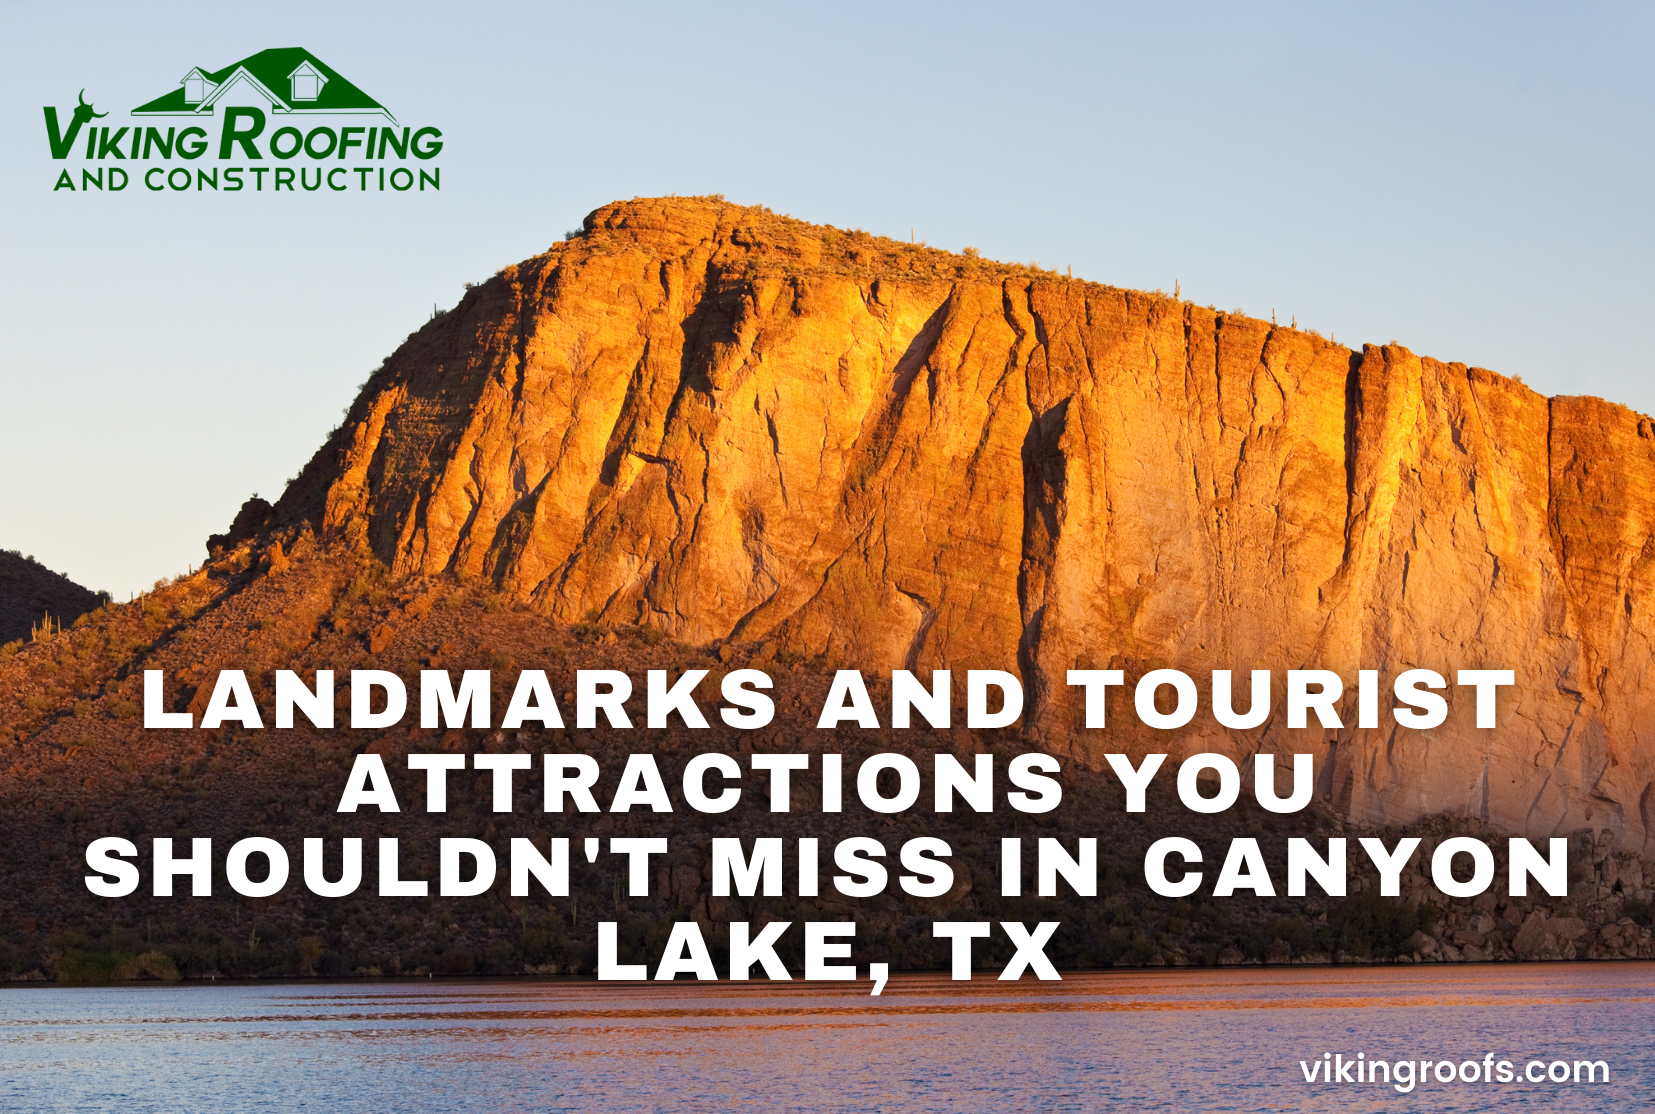 Viking Roofing - Landmarks and Tourist Attractions You Shouldn't Miss in Canyon Lake, TX